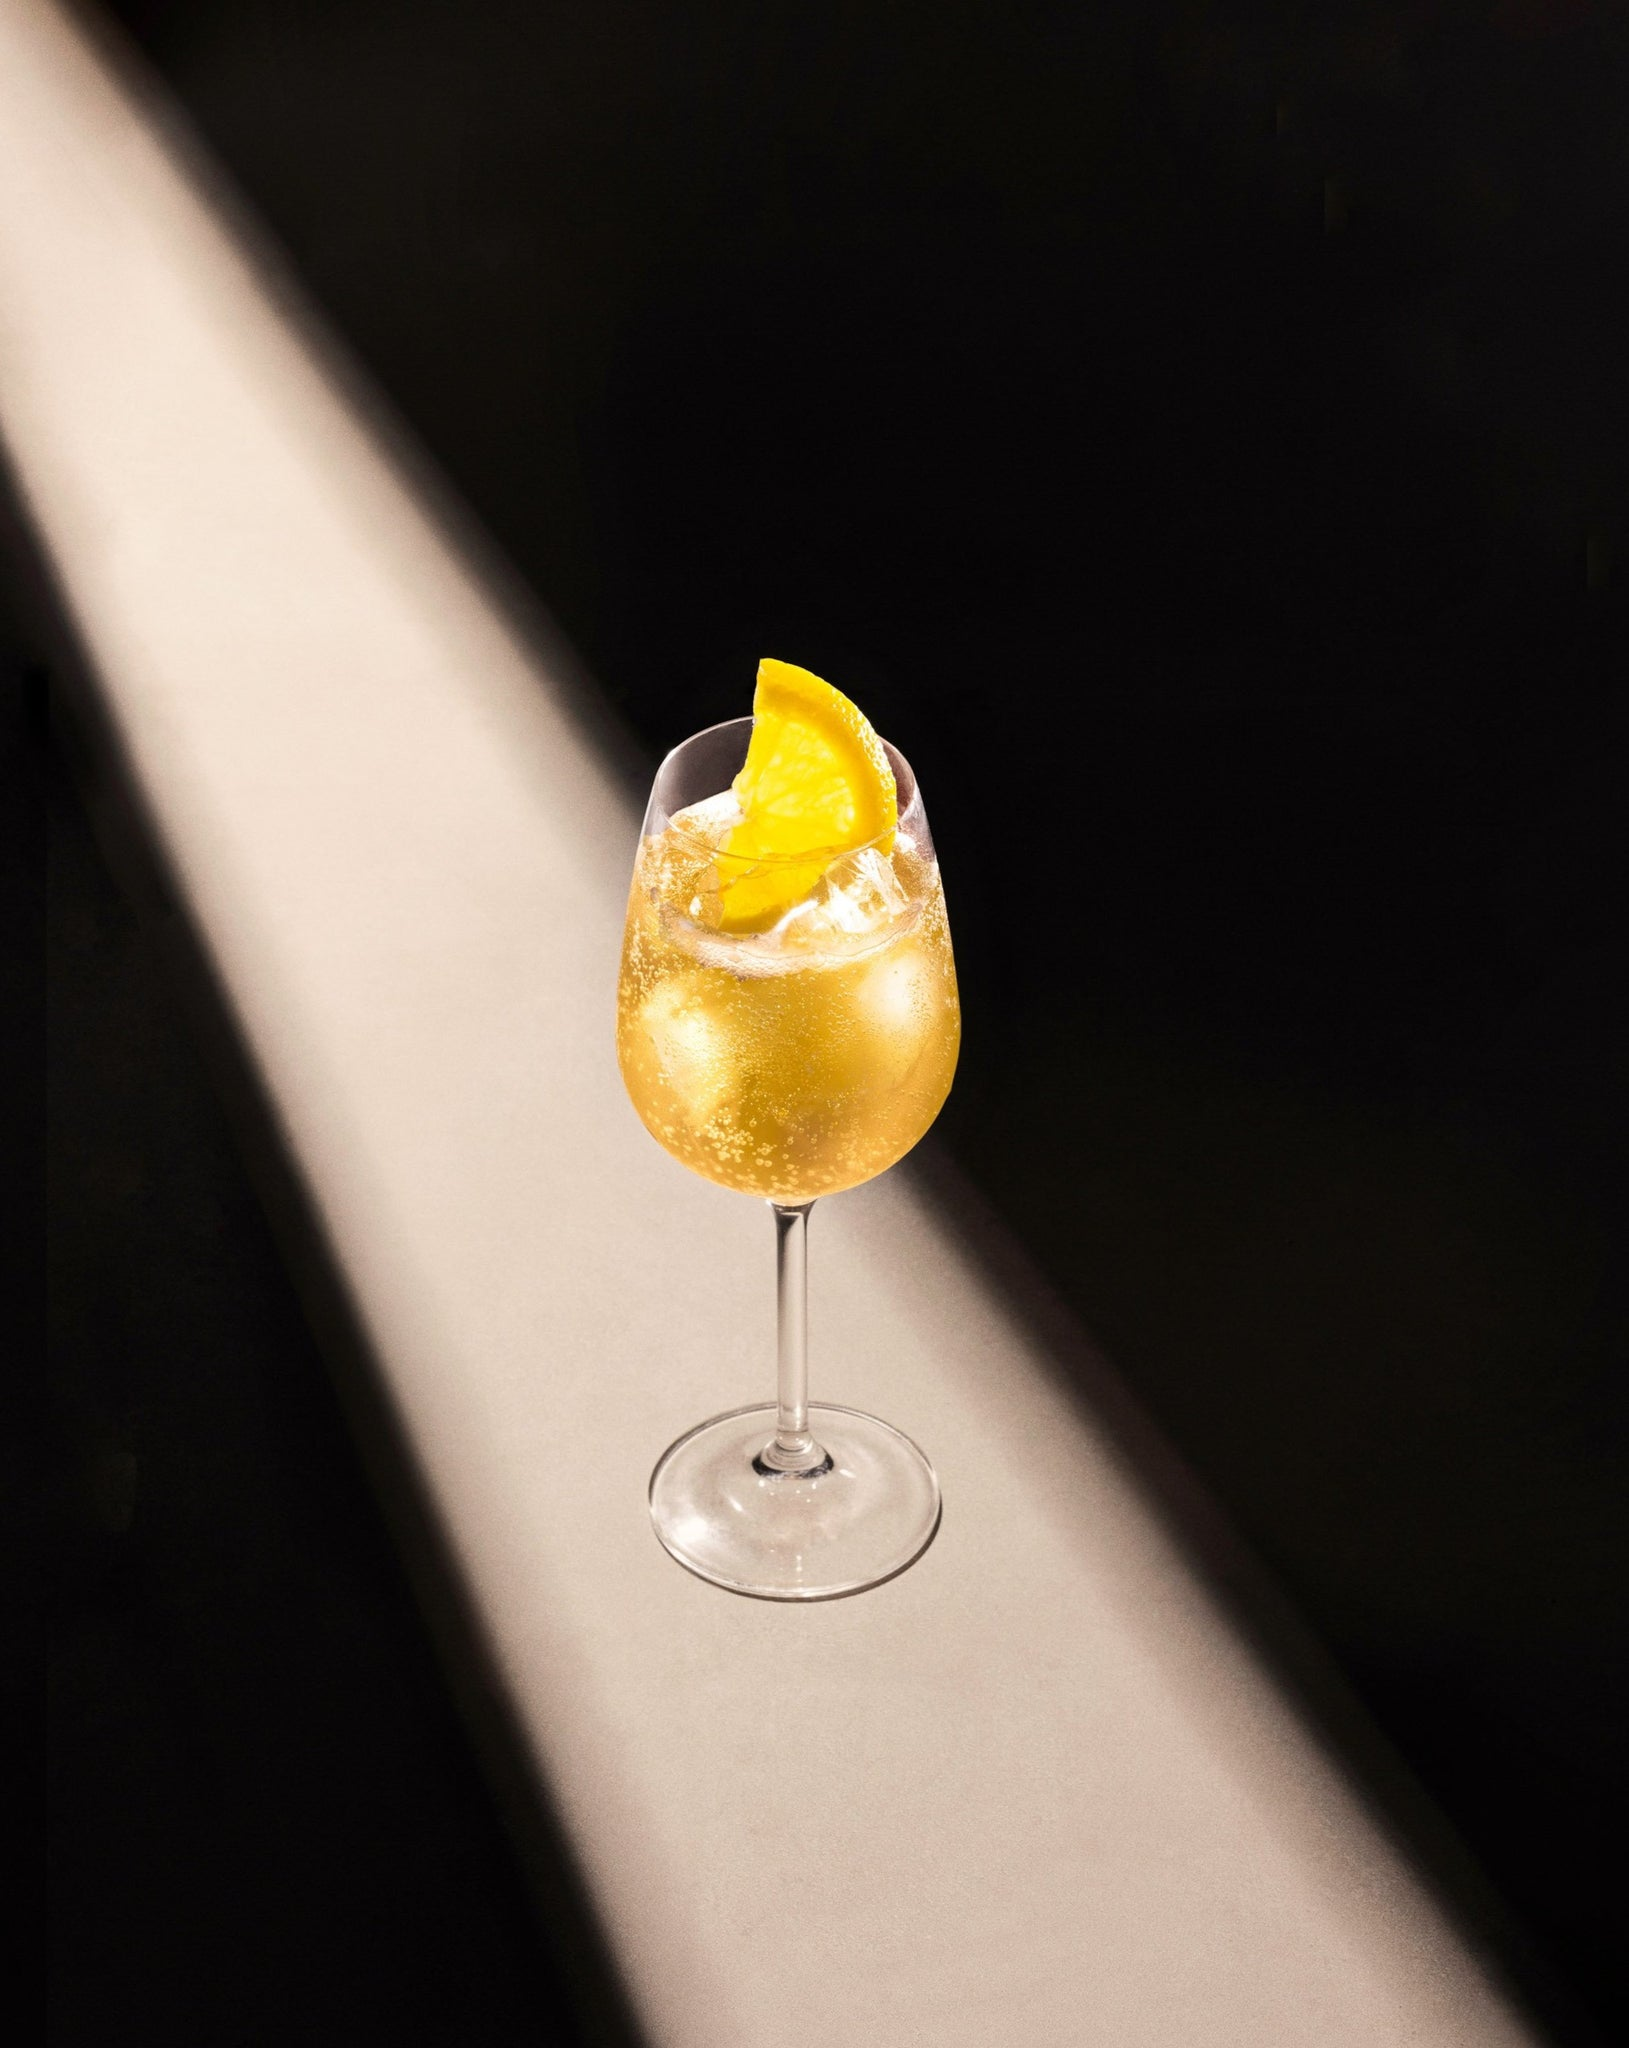 Pear & White Tea Fizz cocktail in a wine glass garnished with a lemon slice.